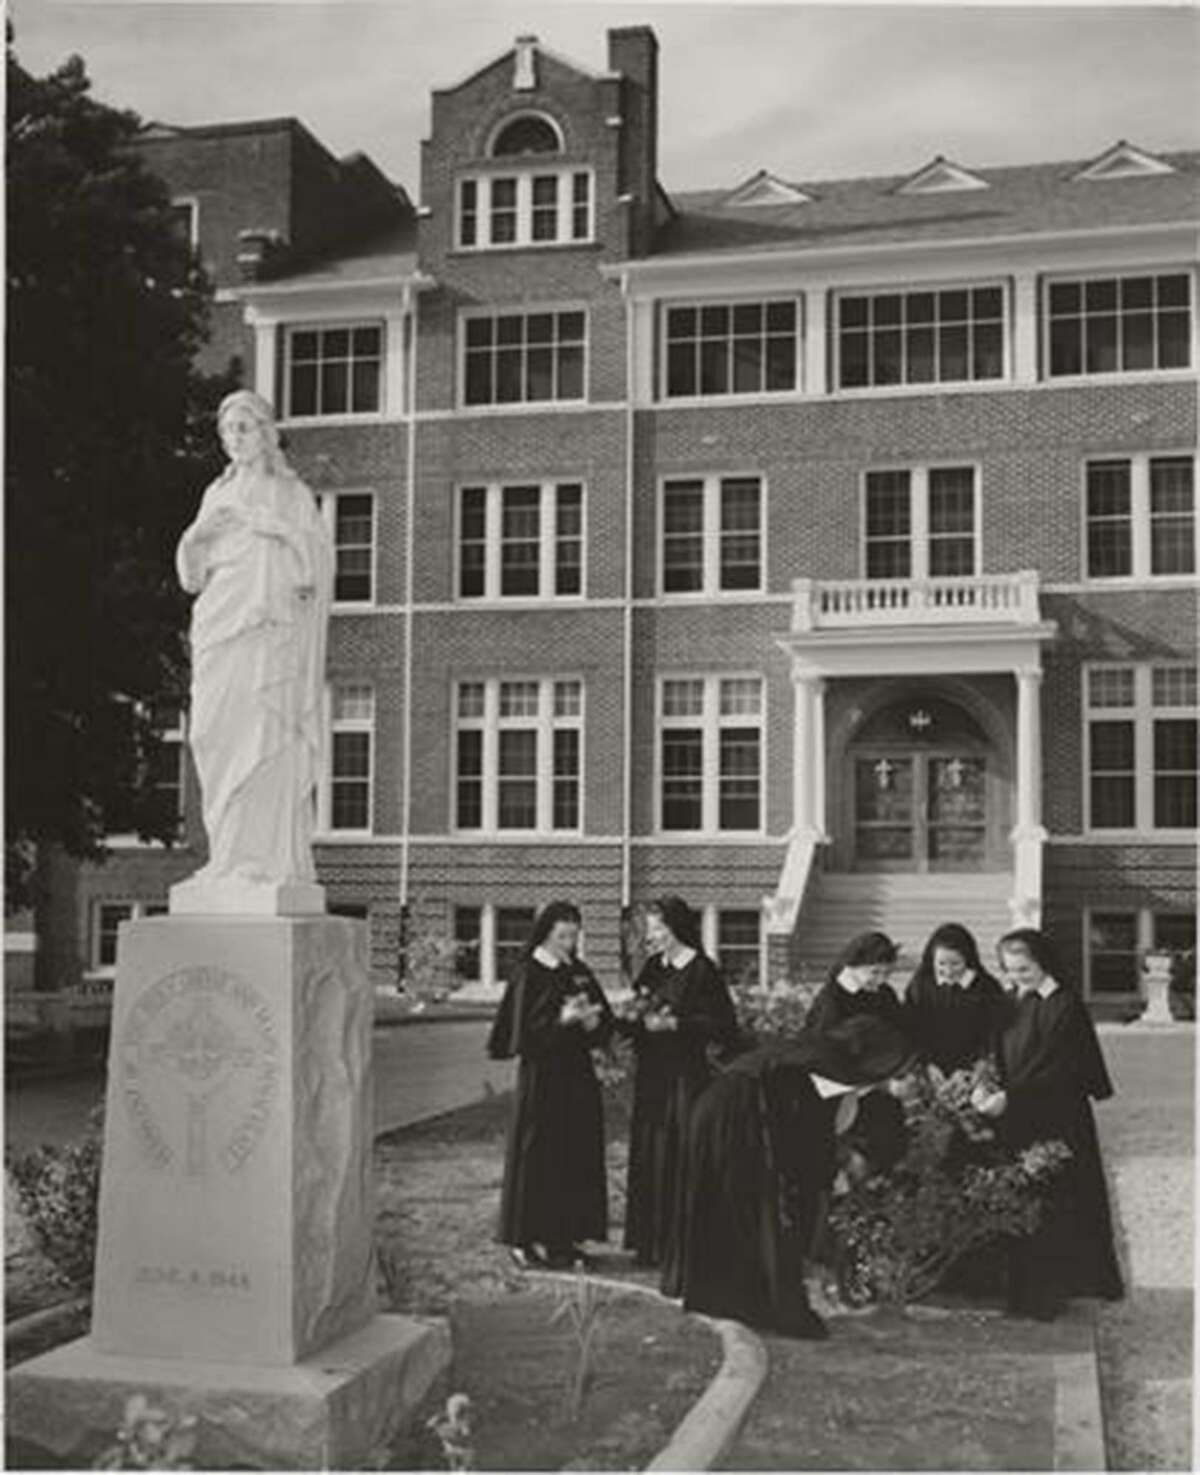 Postulants gather in front of the 1922 mother house of the Sisters of the Holy Spirit and Mary Immaculate on Yucca Street on the city's East Side.